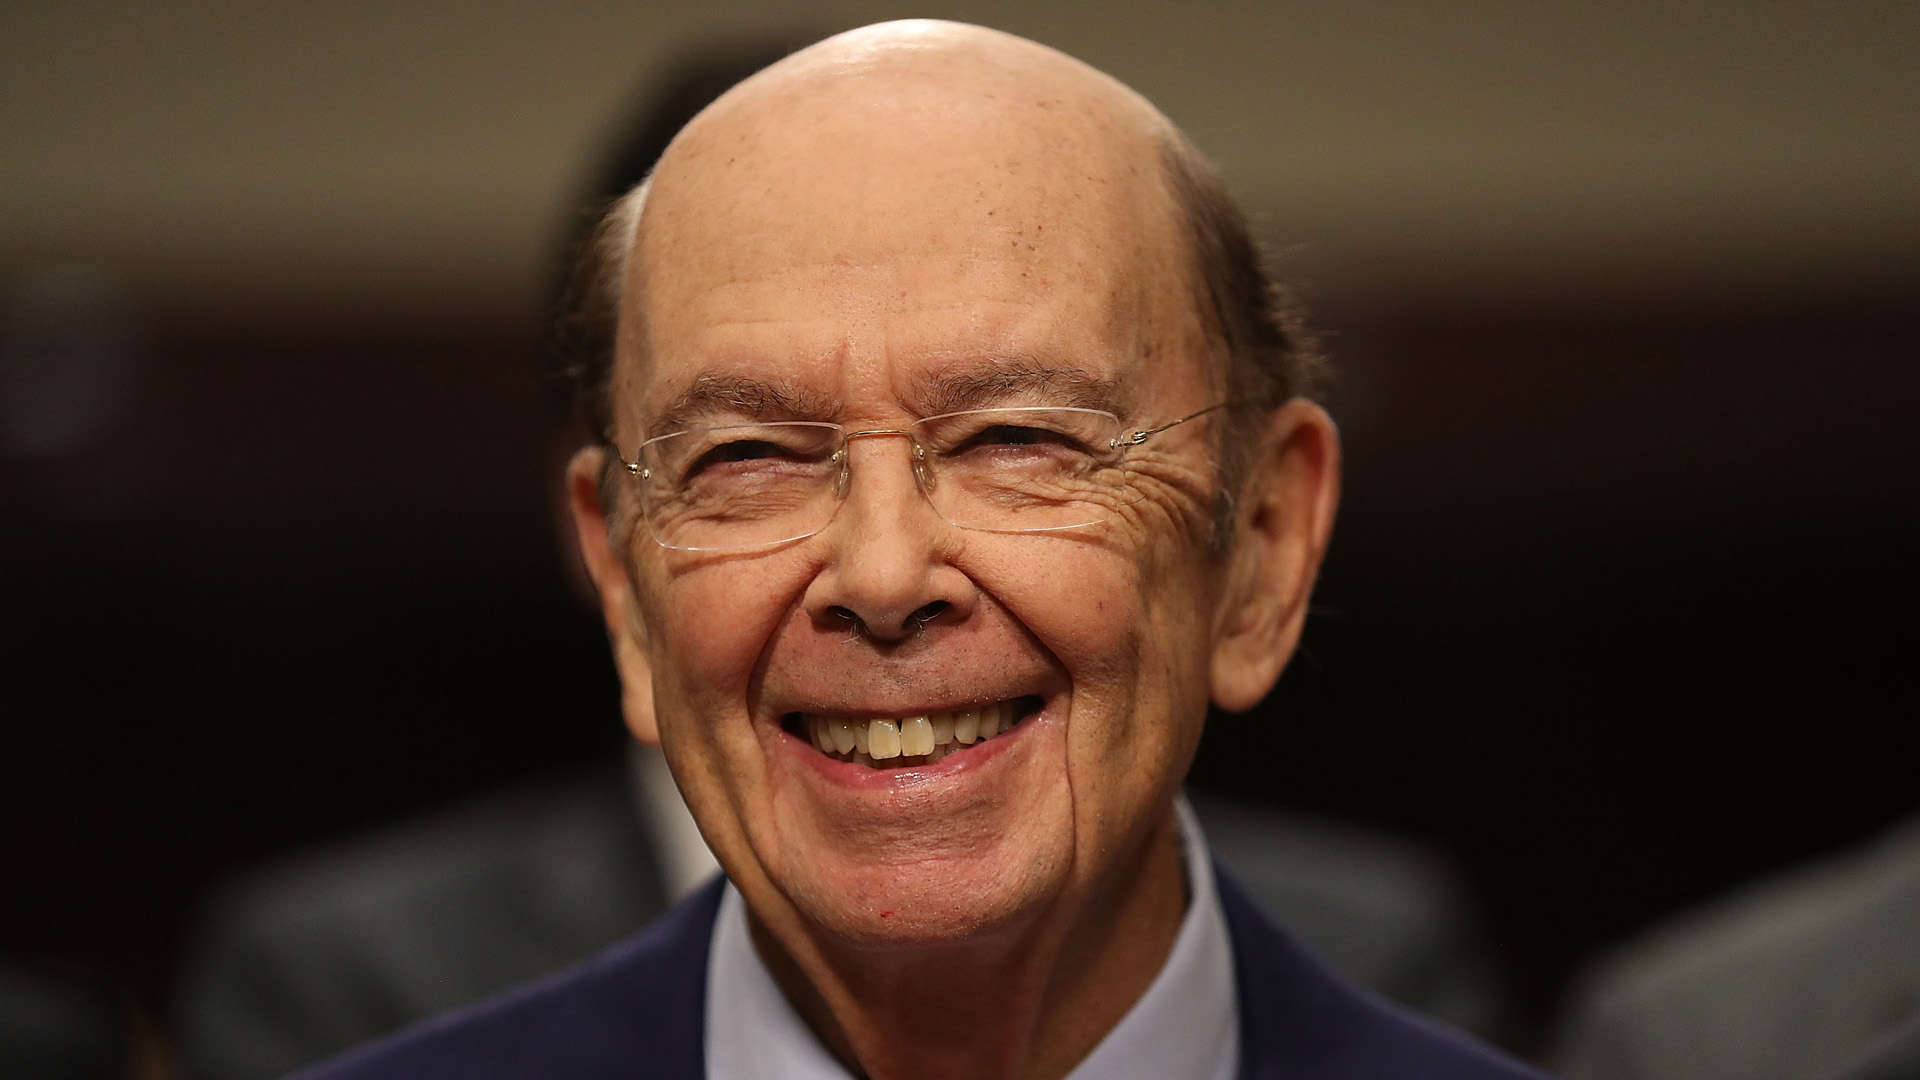 Wilbur Ross, picked by President-elect Donald Trump to serve as his commerce secretary, testifies at his confirmation hearing in front of the Senate Commerce Committee on Capitol Hill on January 18, 2017 in Washington, DC. (Credit: Joe Raedle/Getty Images)